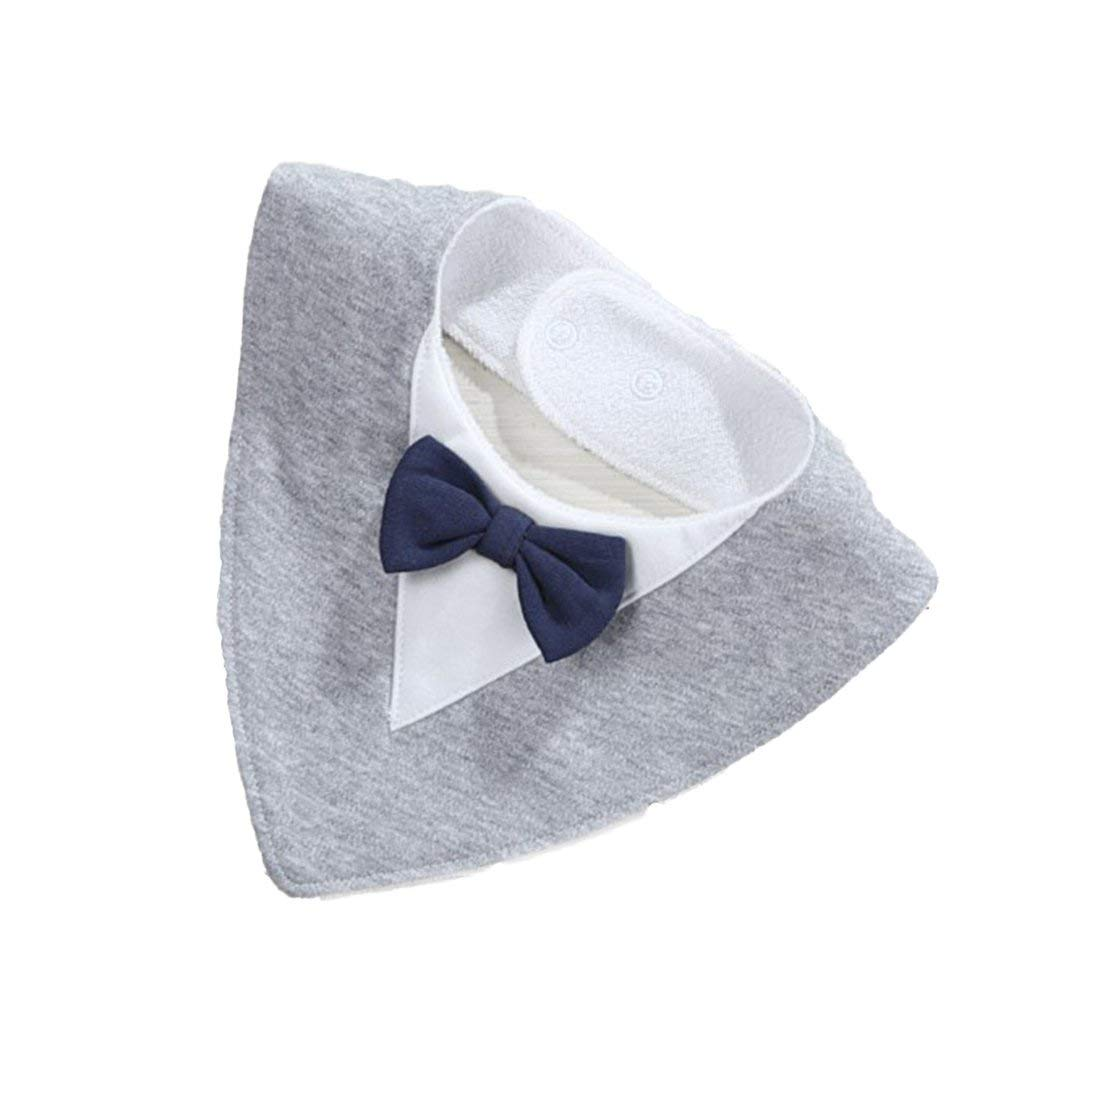 Fashion Triangle Bow Waterproof Baby Drool Bibs Organic Soft Pure Cotton Bibs for Teething Drooling Feeding Baby - Gray Formulaone